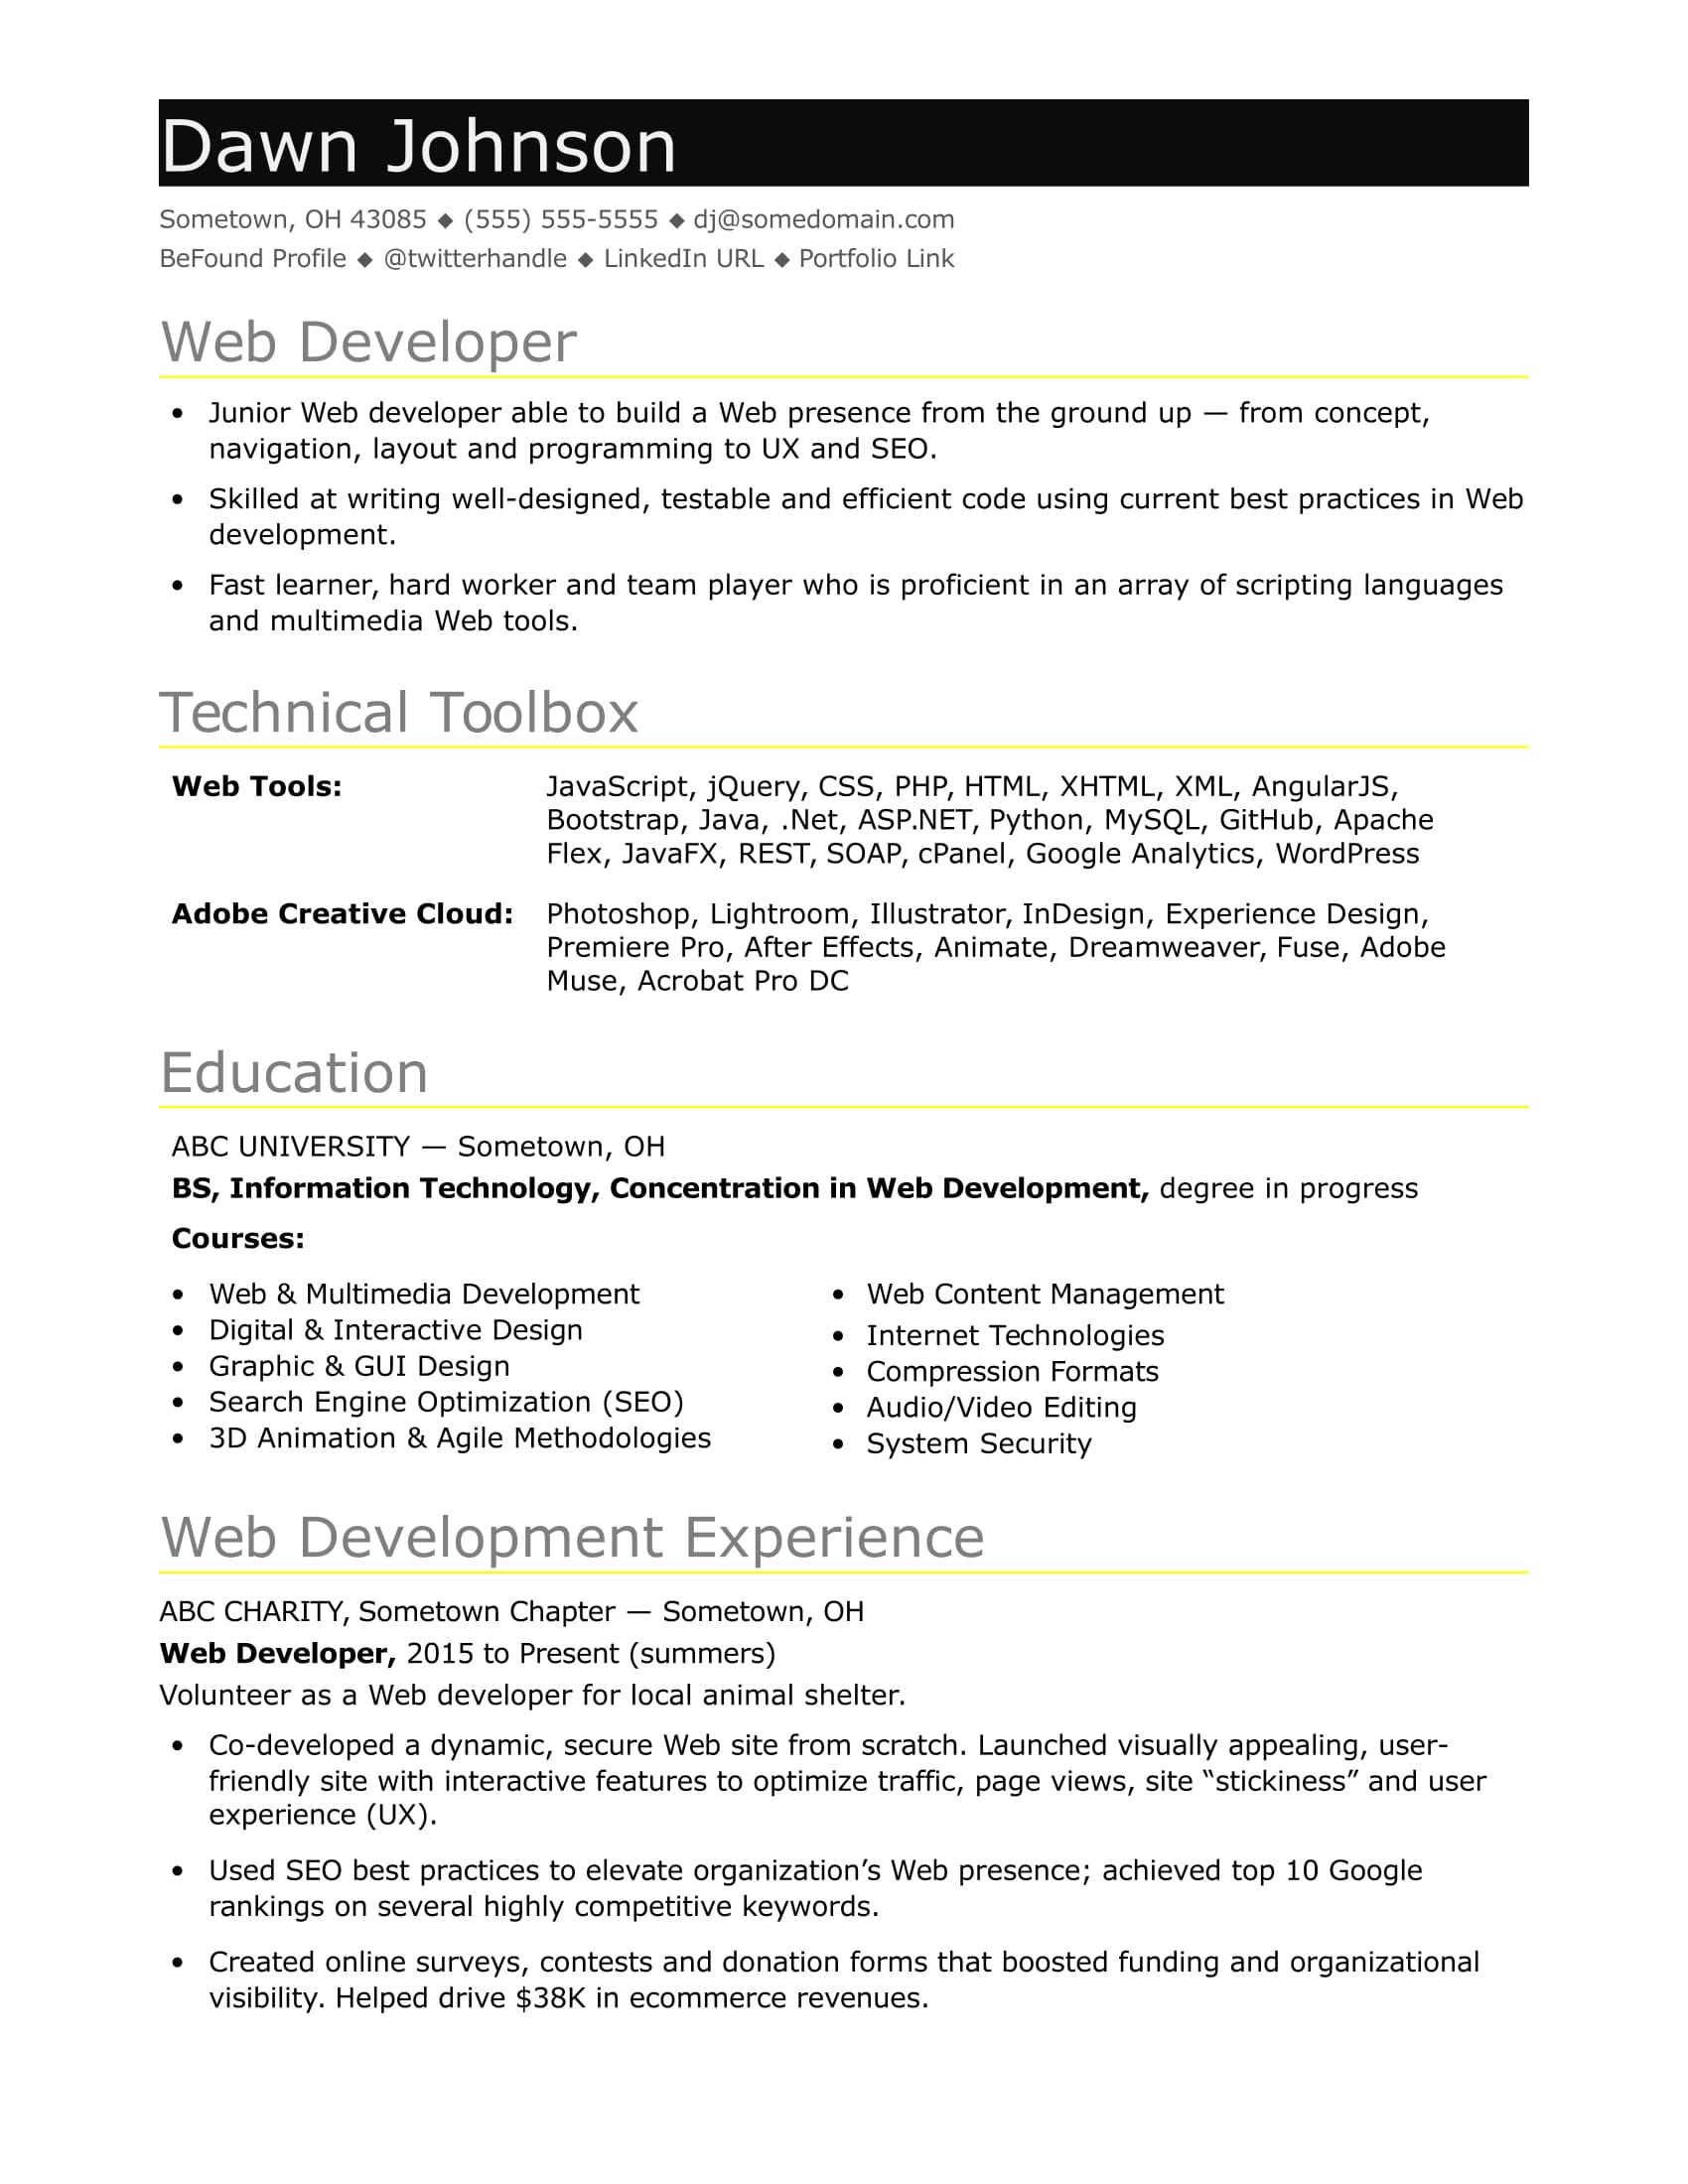 Sample Resume for an Entry-Level IT Developer